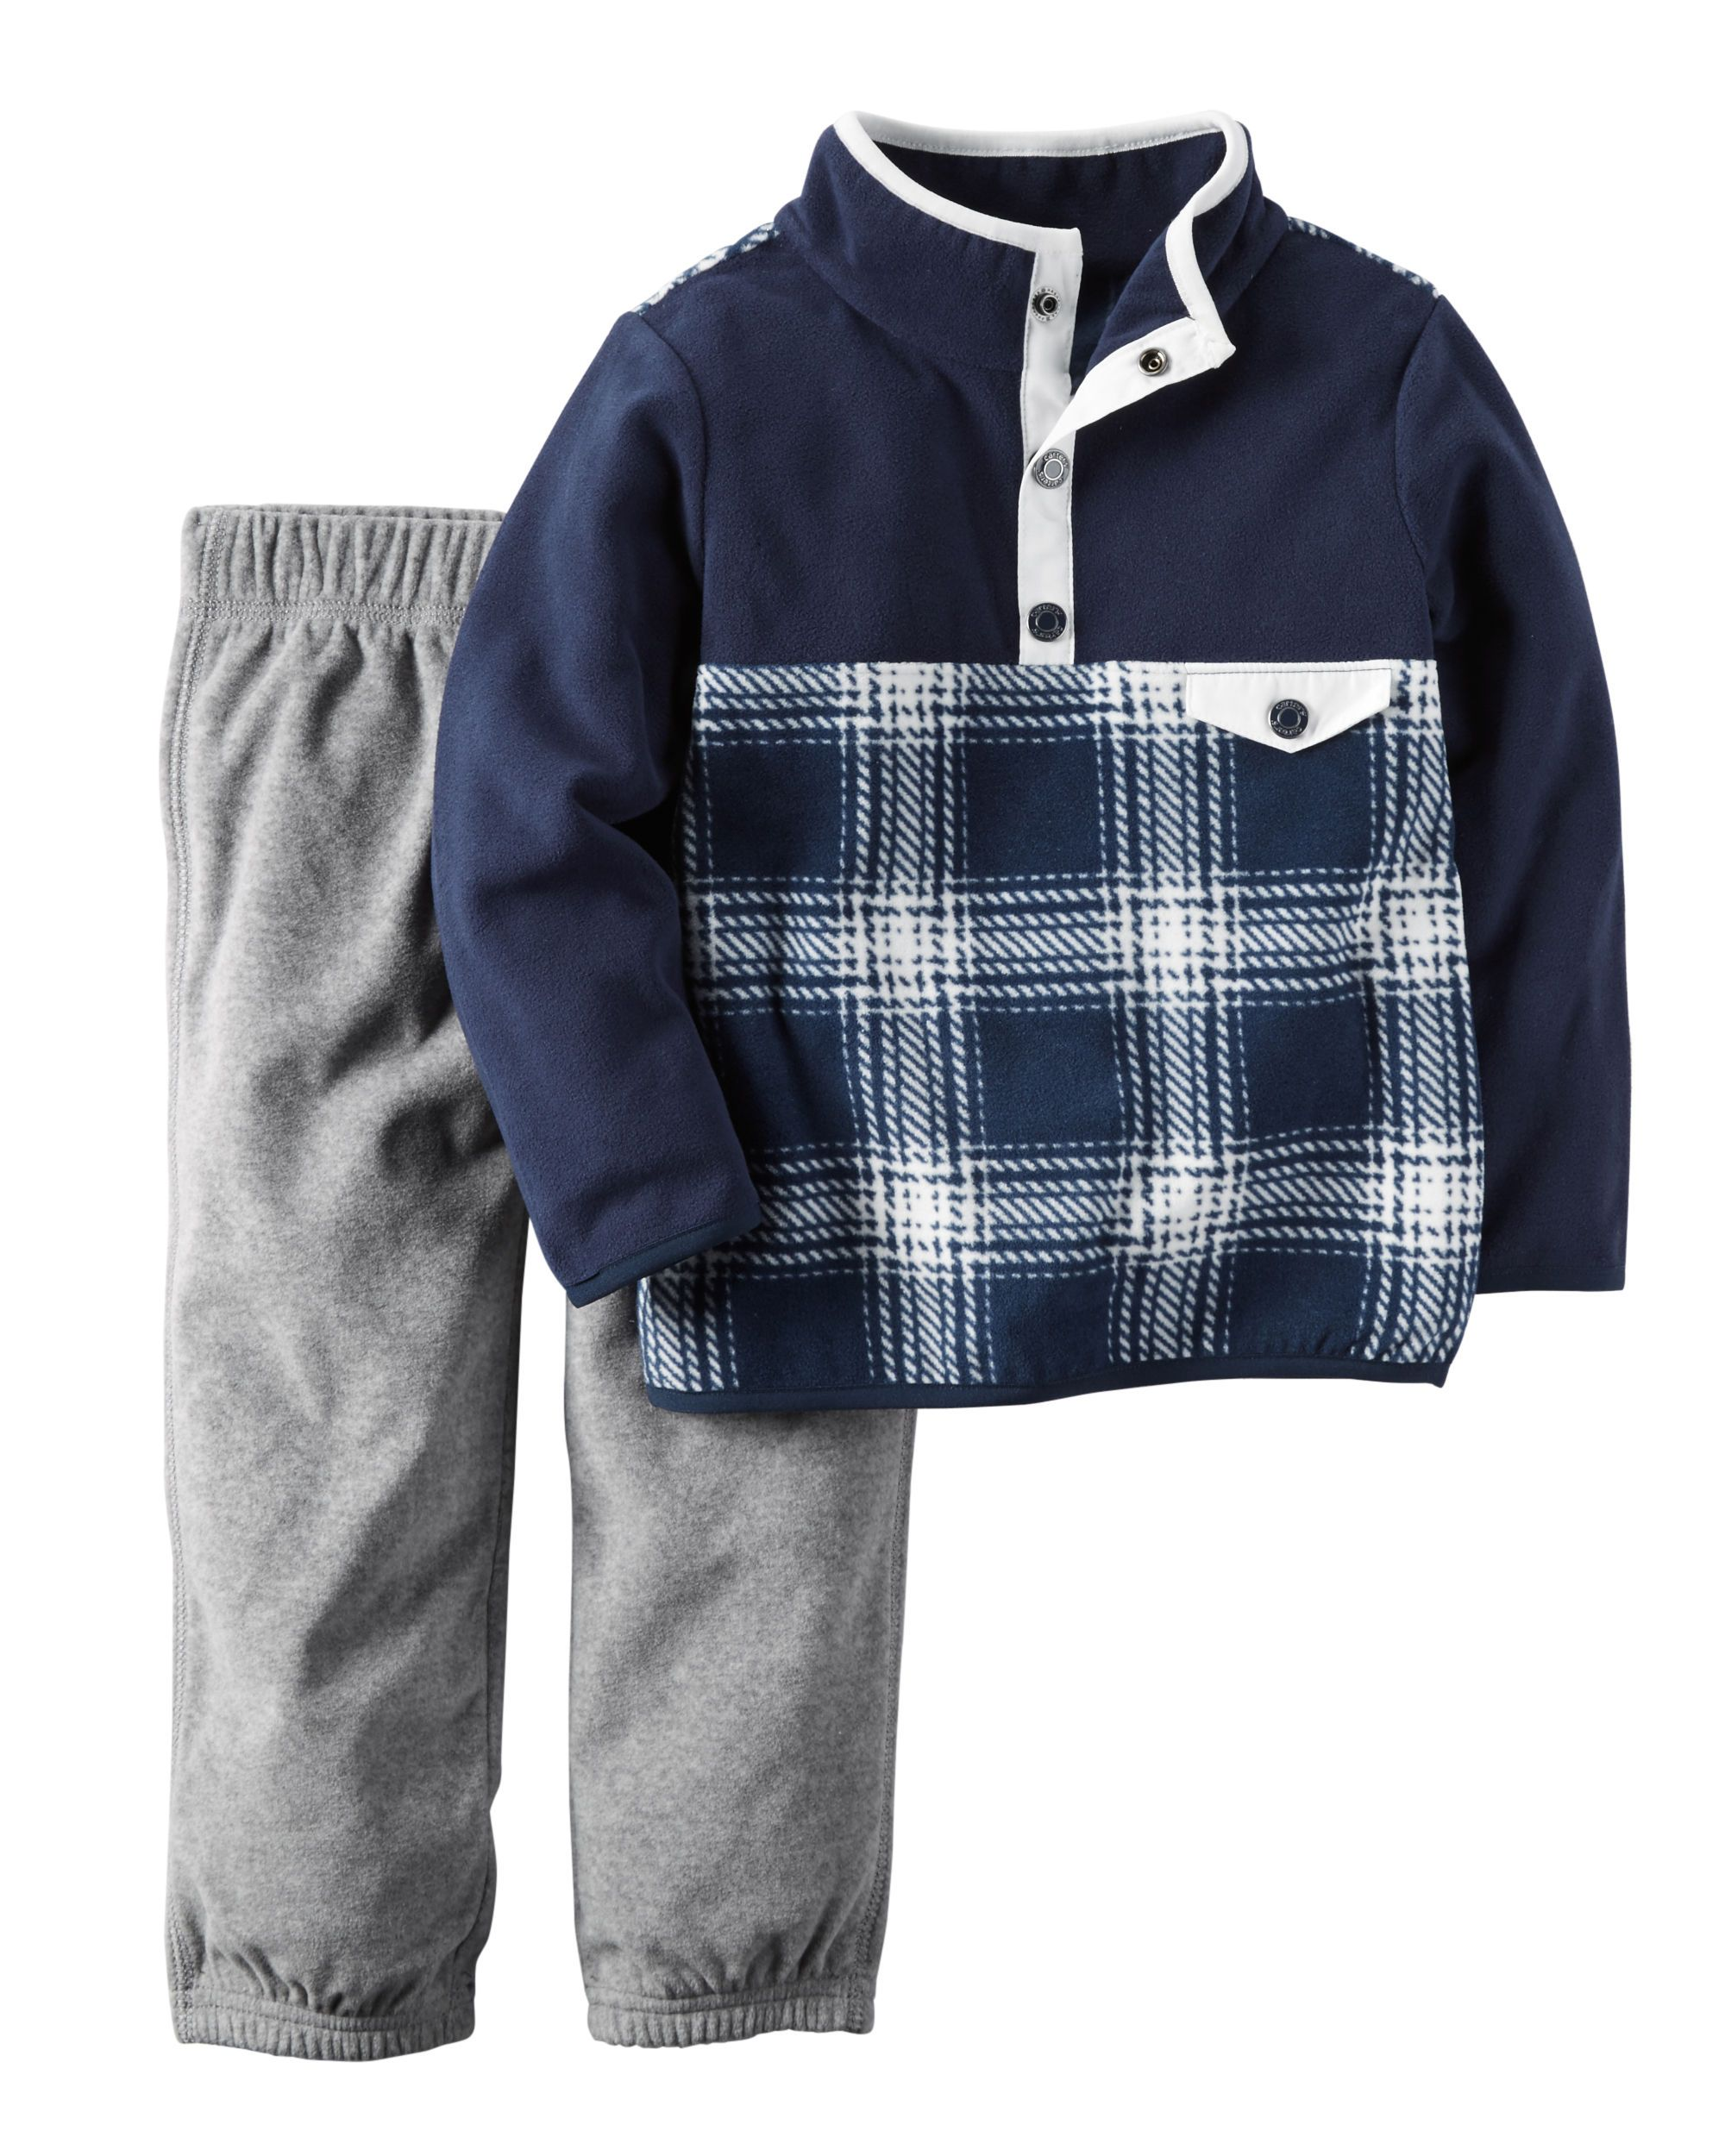 2-Piece Fleece Pullover & Pant Set | Babies, Babies clothes and ...